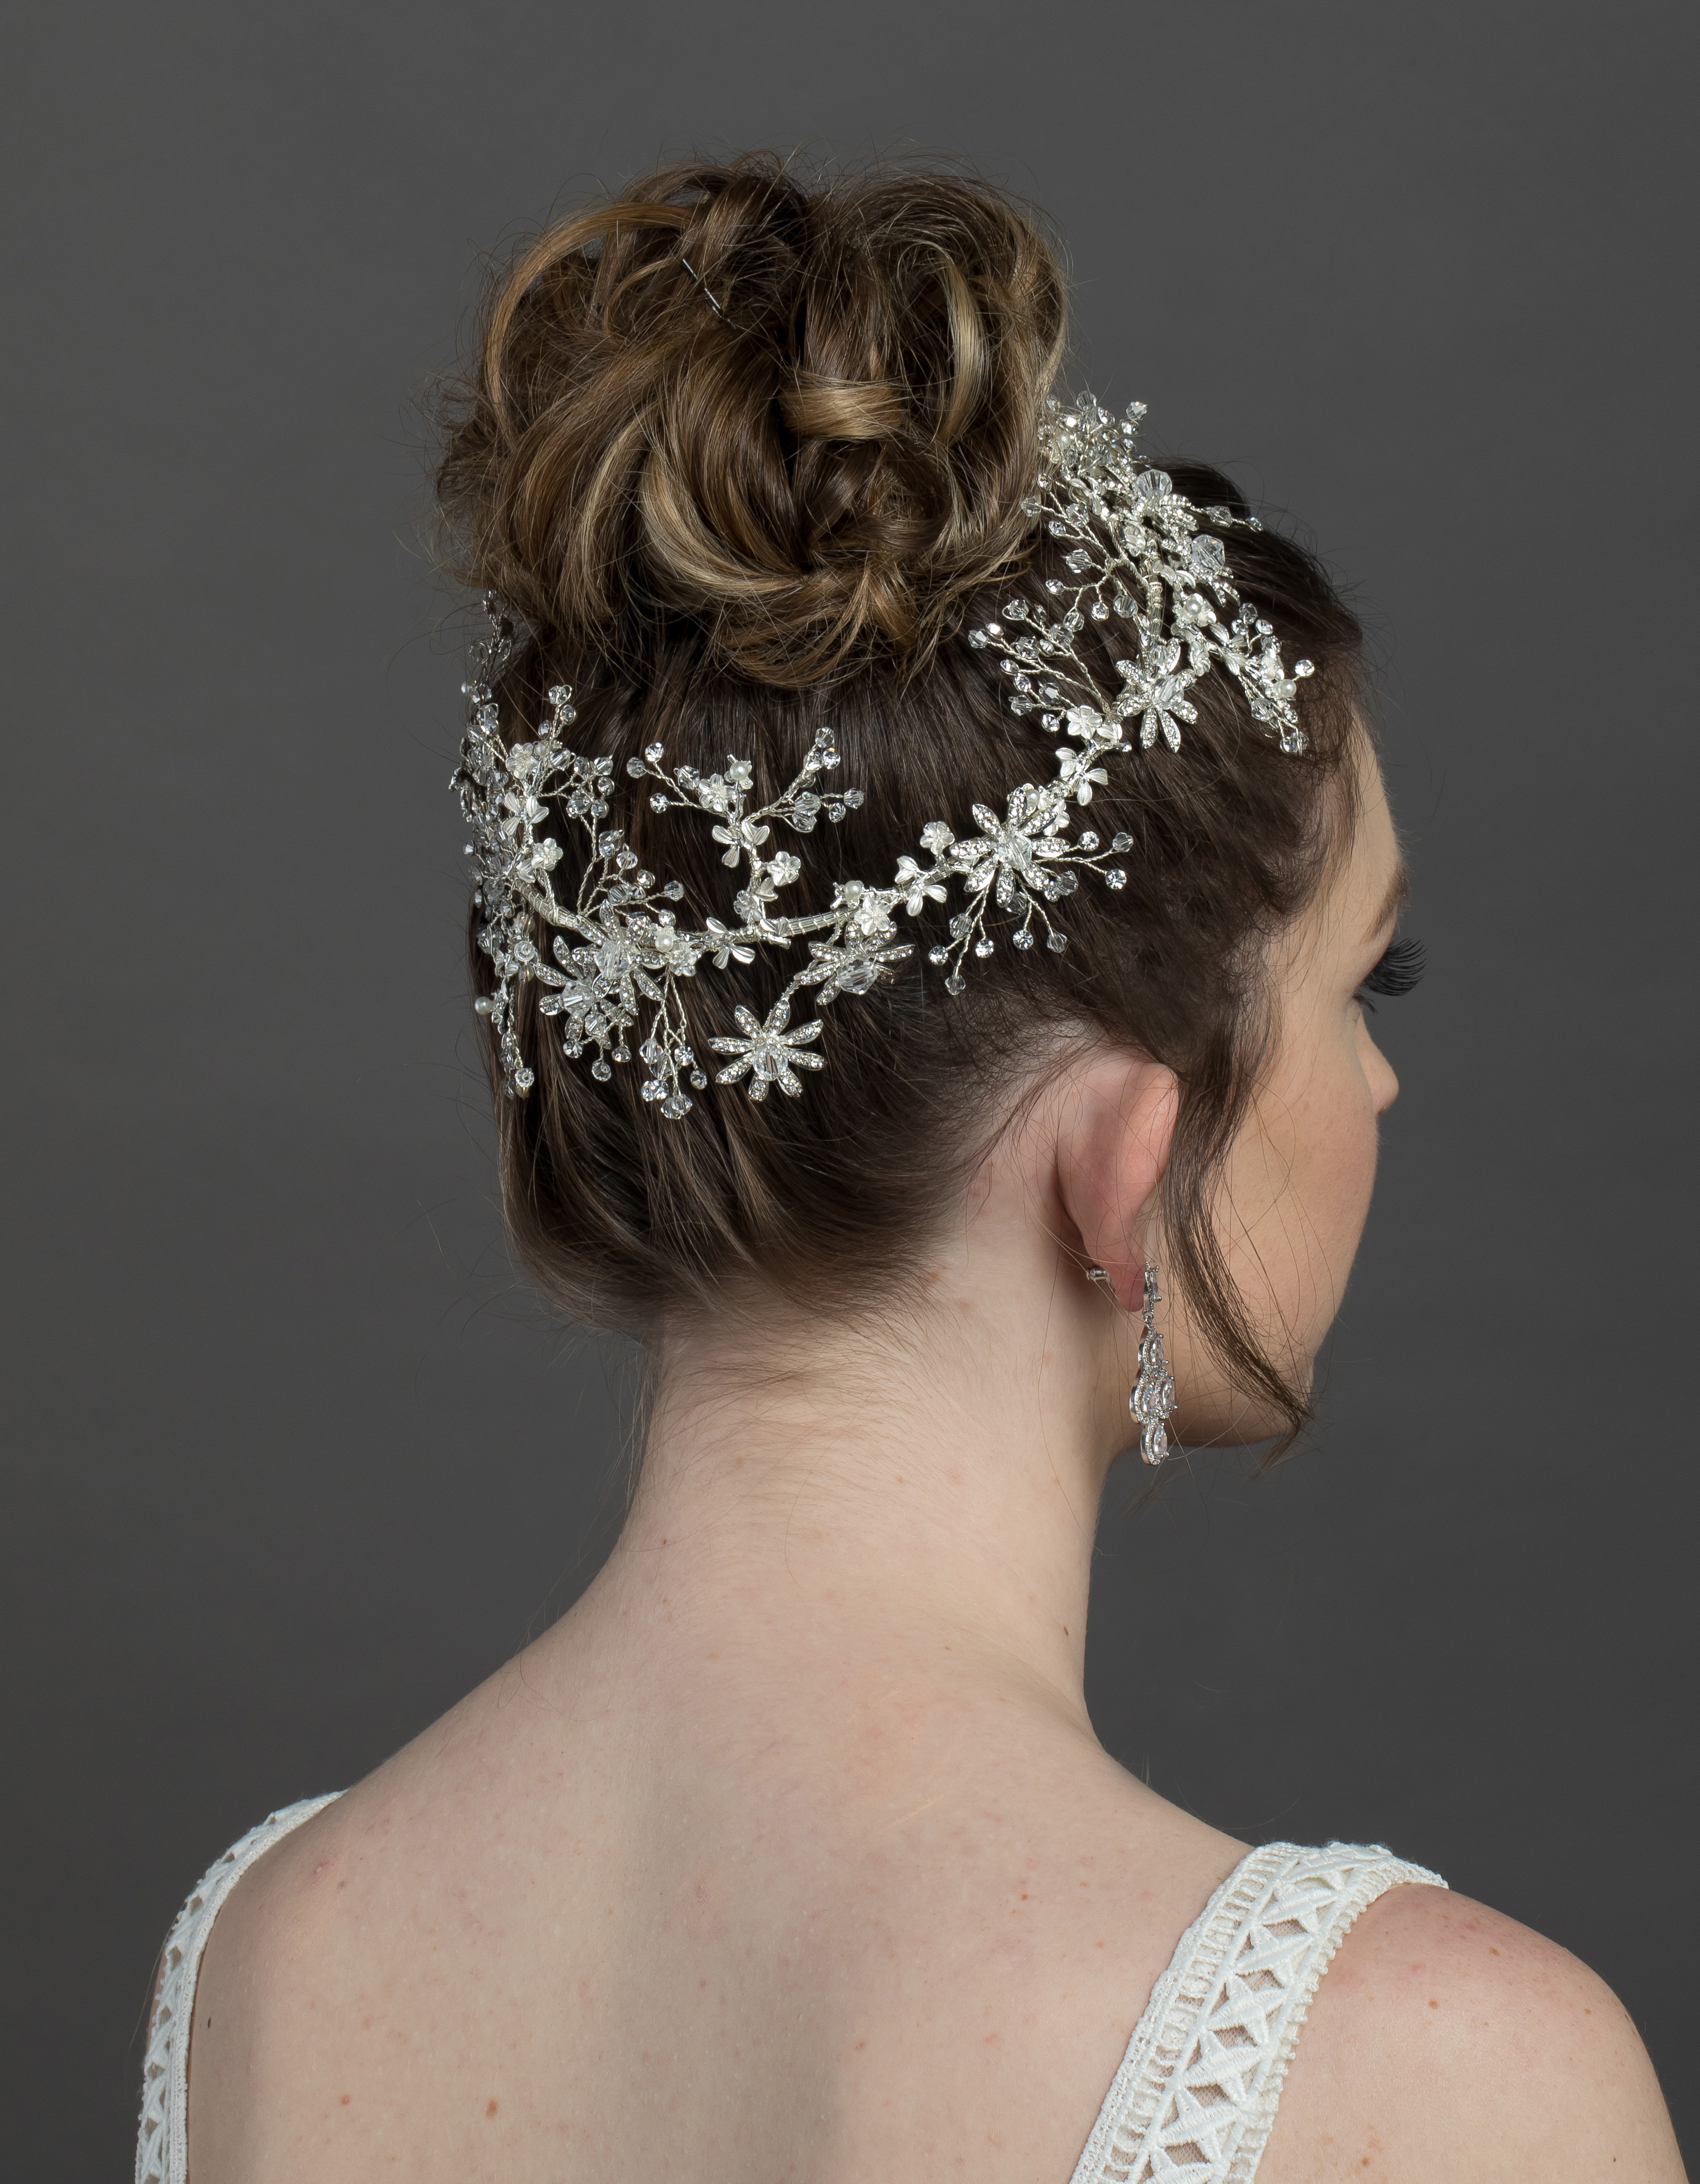 Bridal Classics Headbands, Wreaths & Vines T-4424